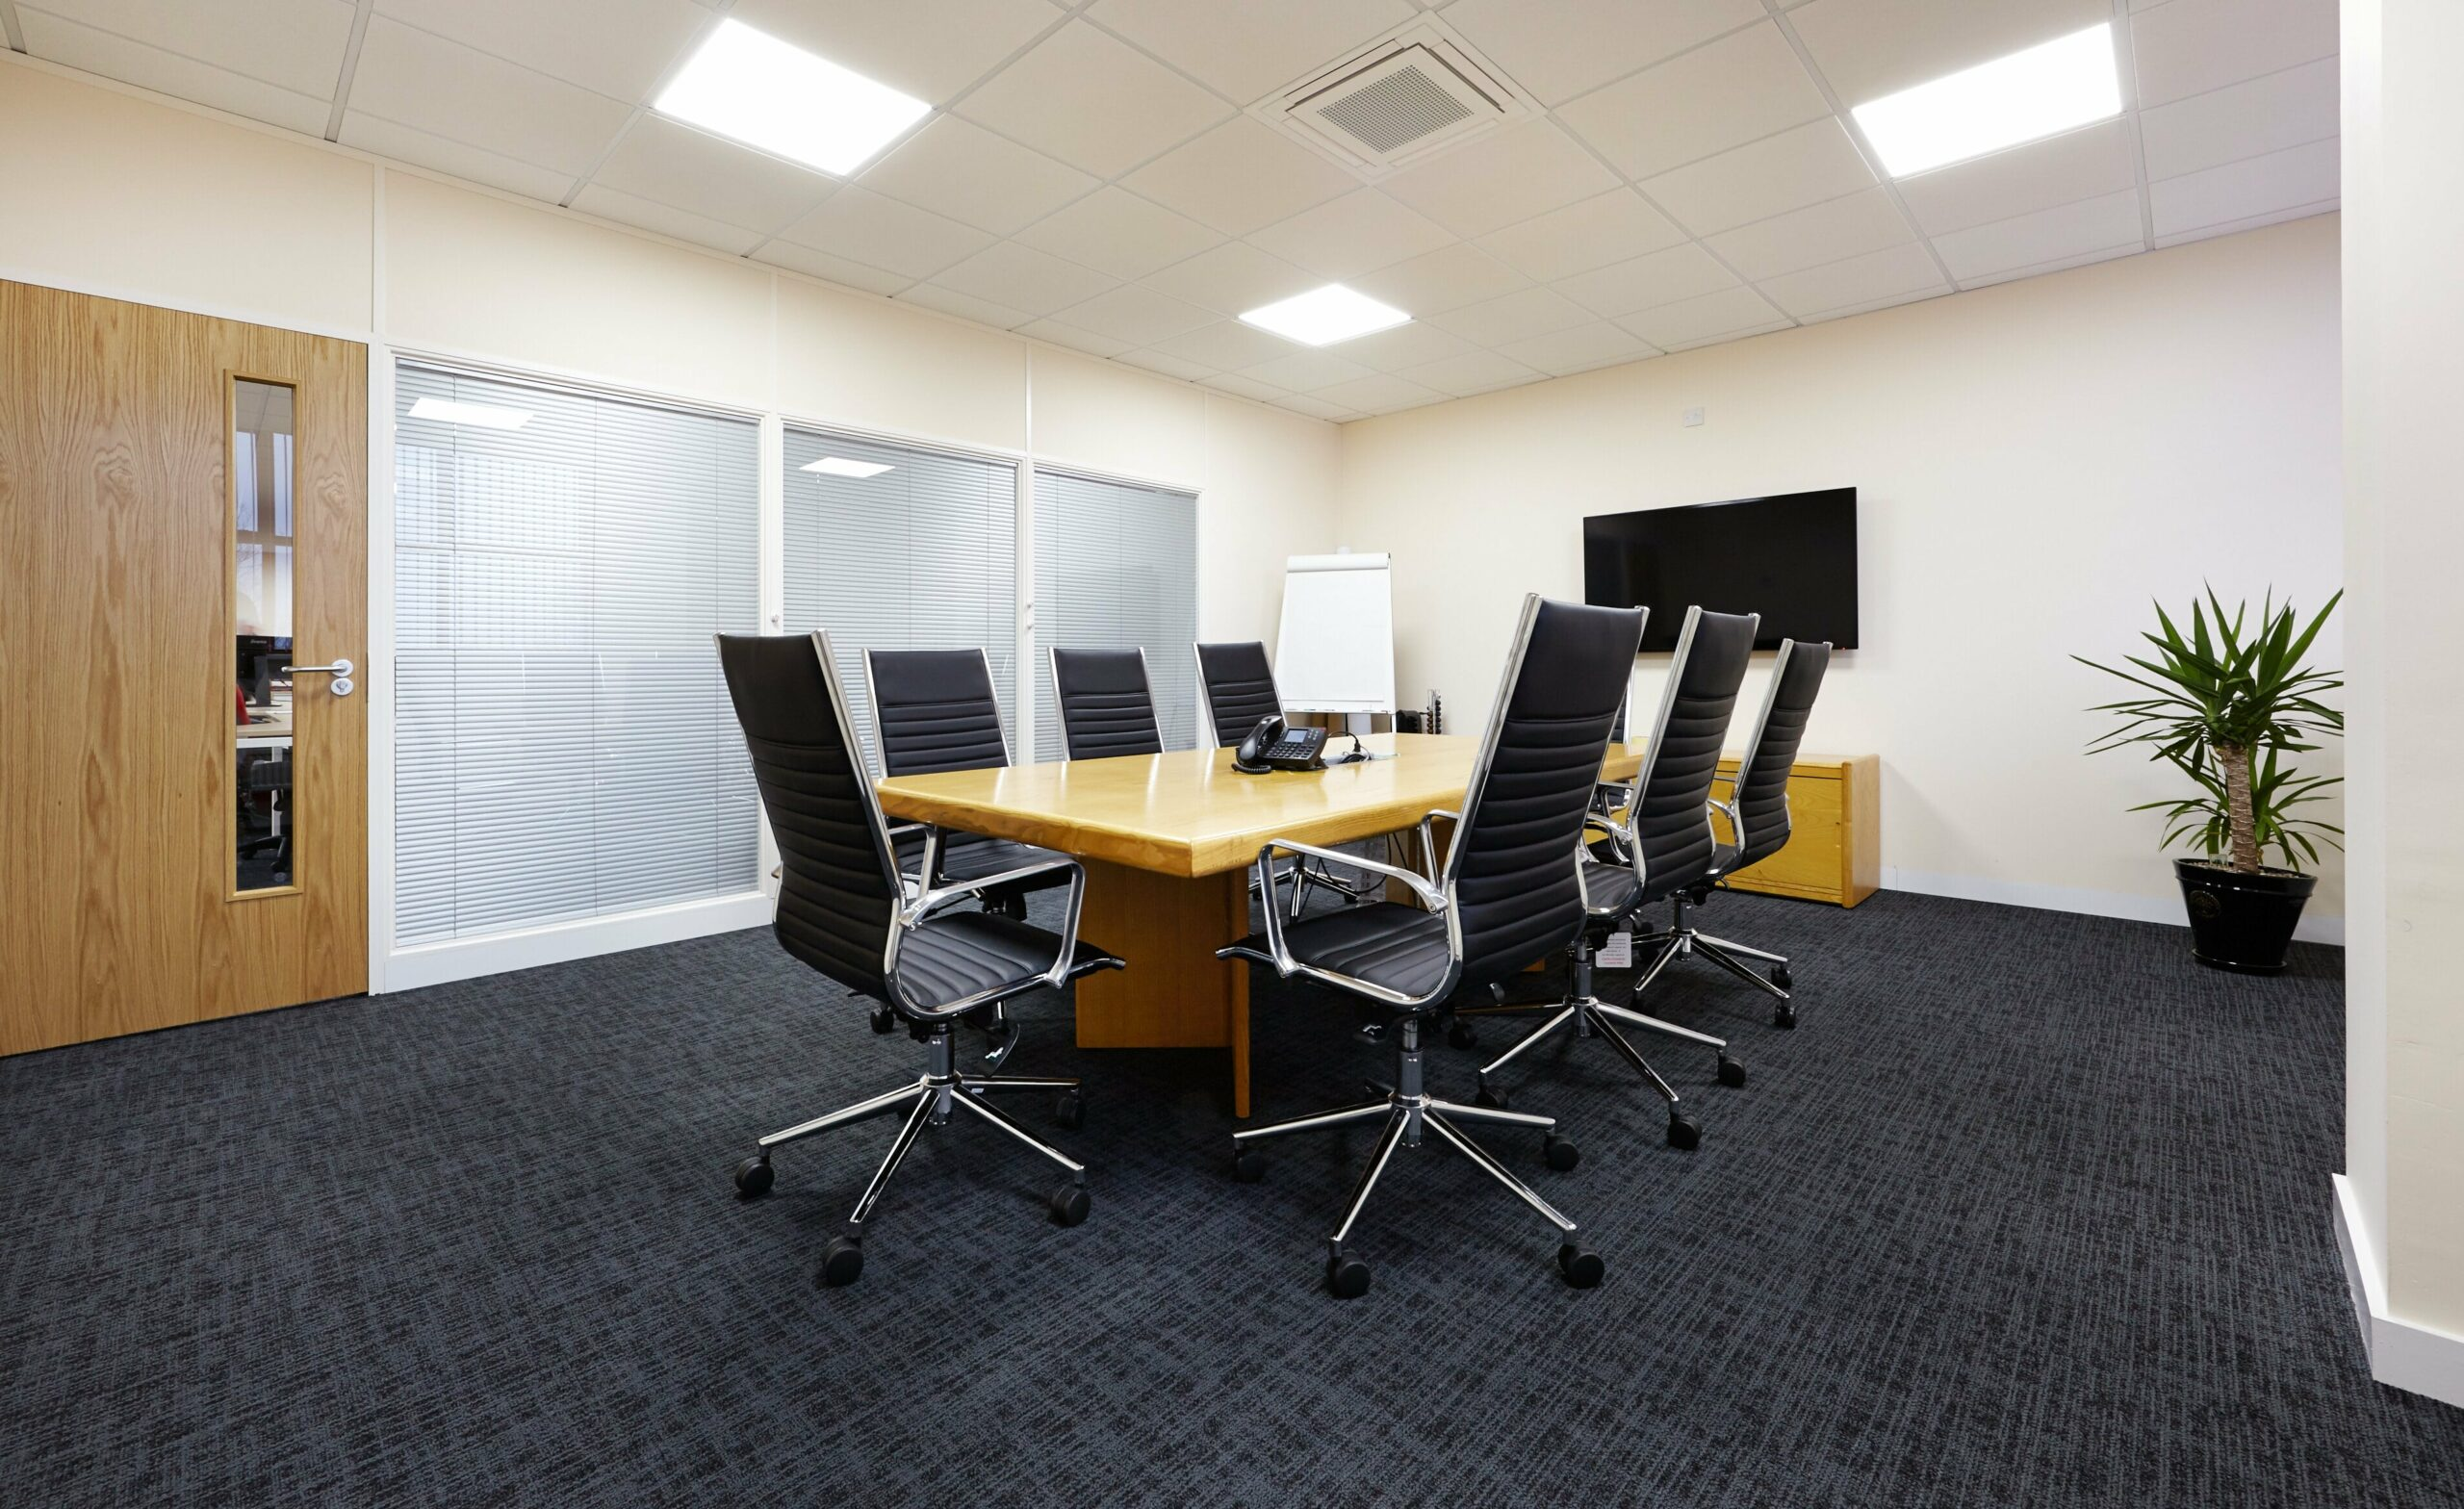 Office board room with large wooden table and black executive chairs